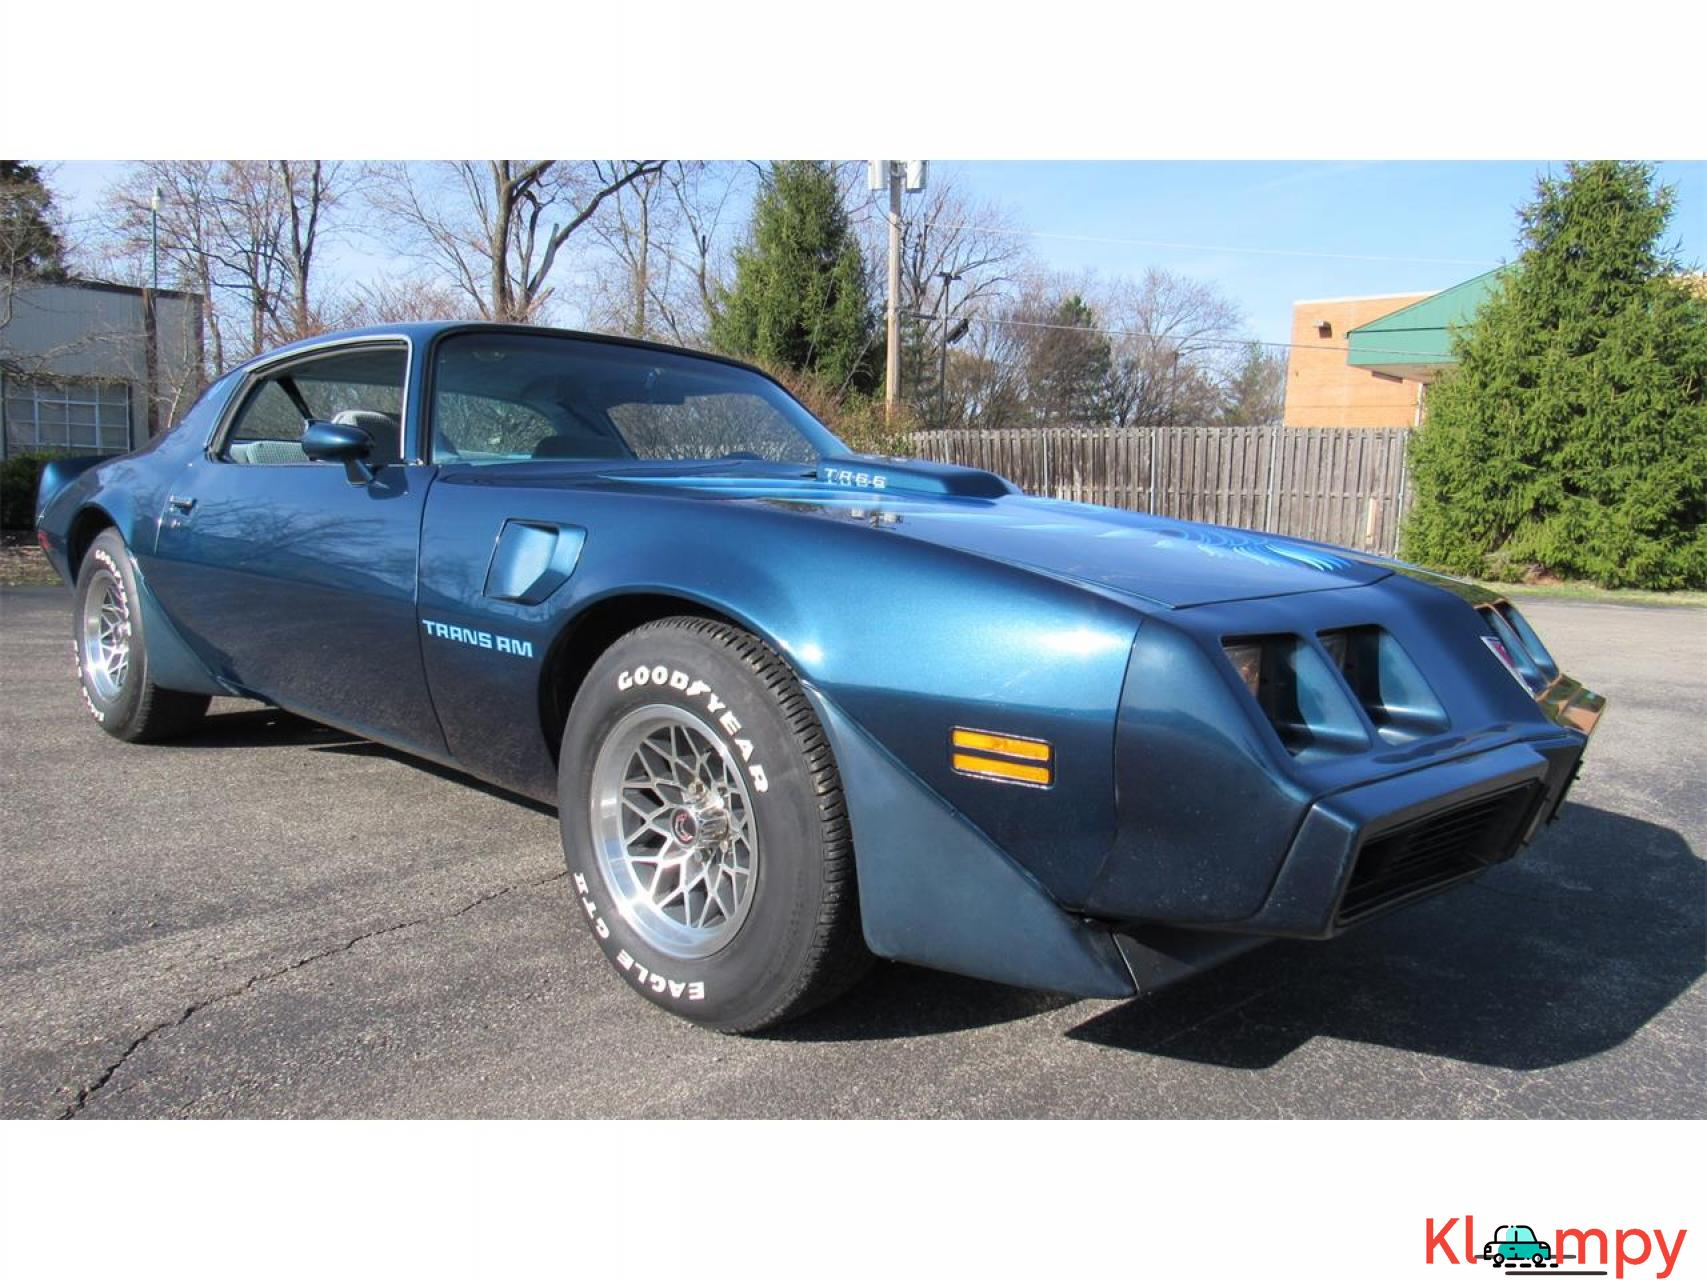 1979 Pontiac Firebird Trans Am 400 engine Original - 2/20